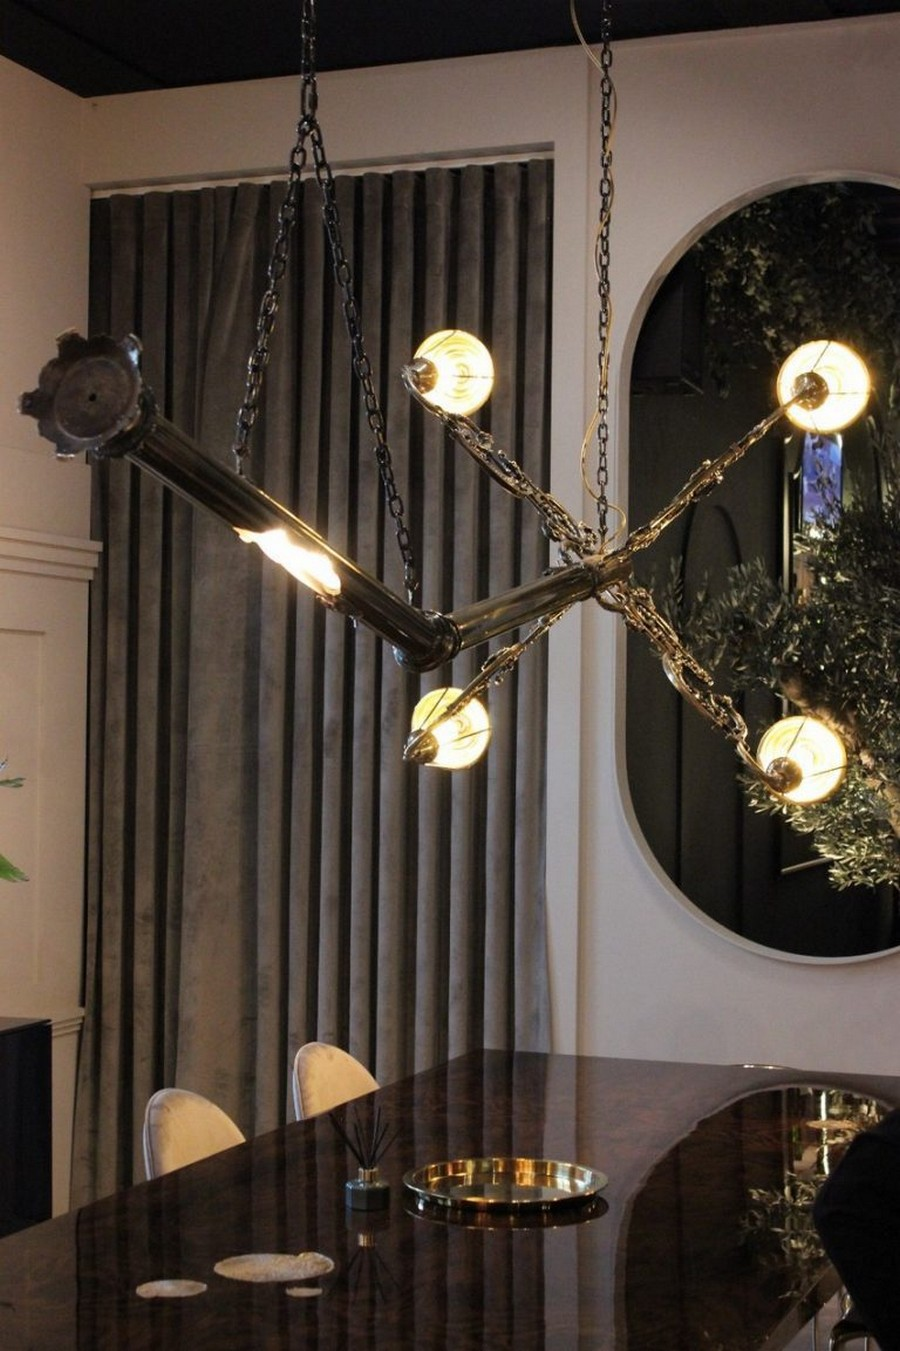 5 Amazing Lighting Designs For Your Next Interior Design Project lighting designs 5 Amazing Lighting Designs For Your Next Interior Design Project 5 Amazing Lighting Designs For Your Next Interior Design Project 3